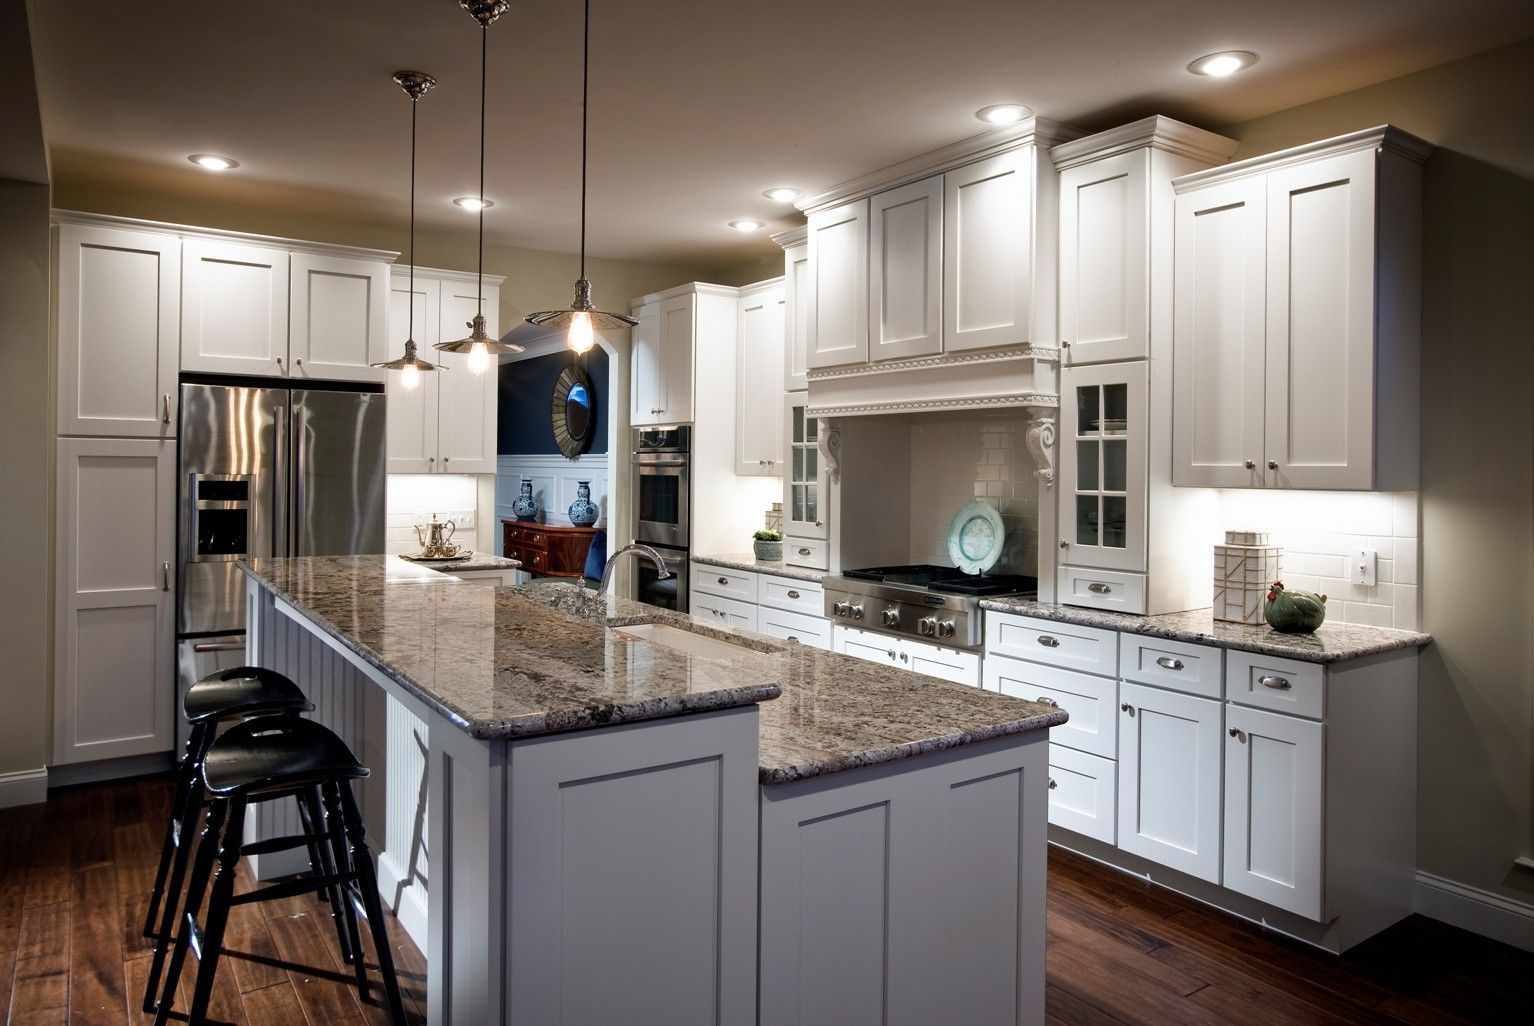 Kitchen Furniture L Shape Kitchen Layout Design With White Wooden Kitchen Island And Kitchen Island With Sink Custom Kitchen Island Kitchen Layouts With Island